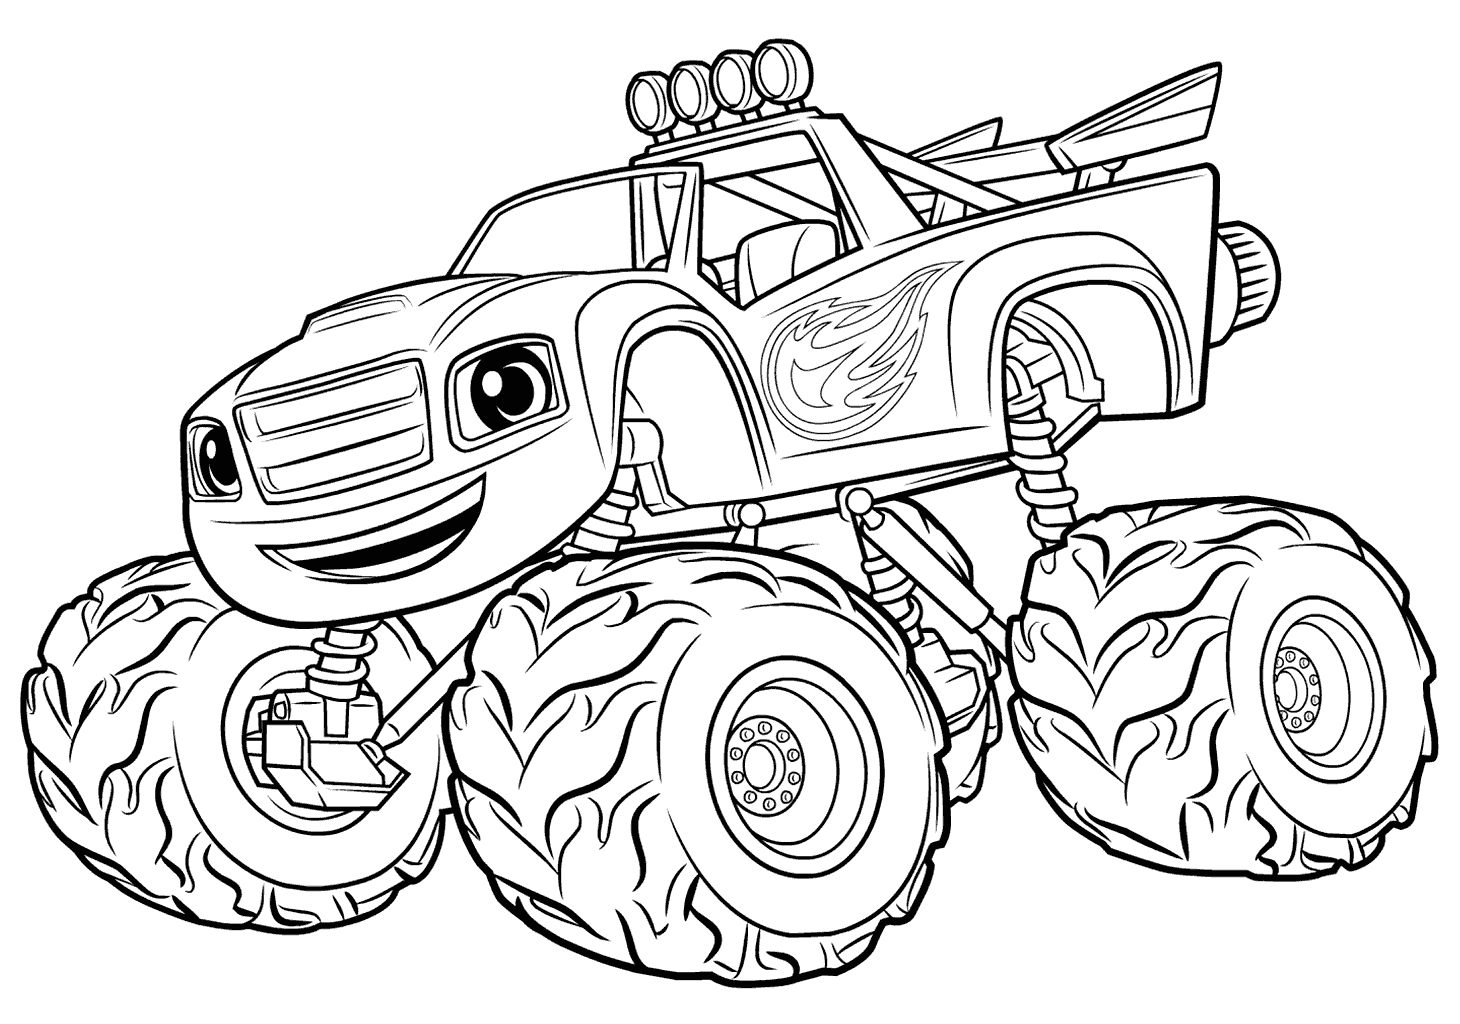 Blaze and the Monster Machine Coloring Pages to Print Blaze and the Monster Machines Coloring Pages Best